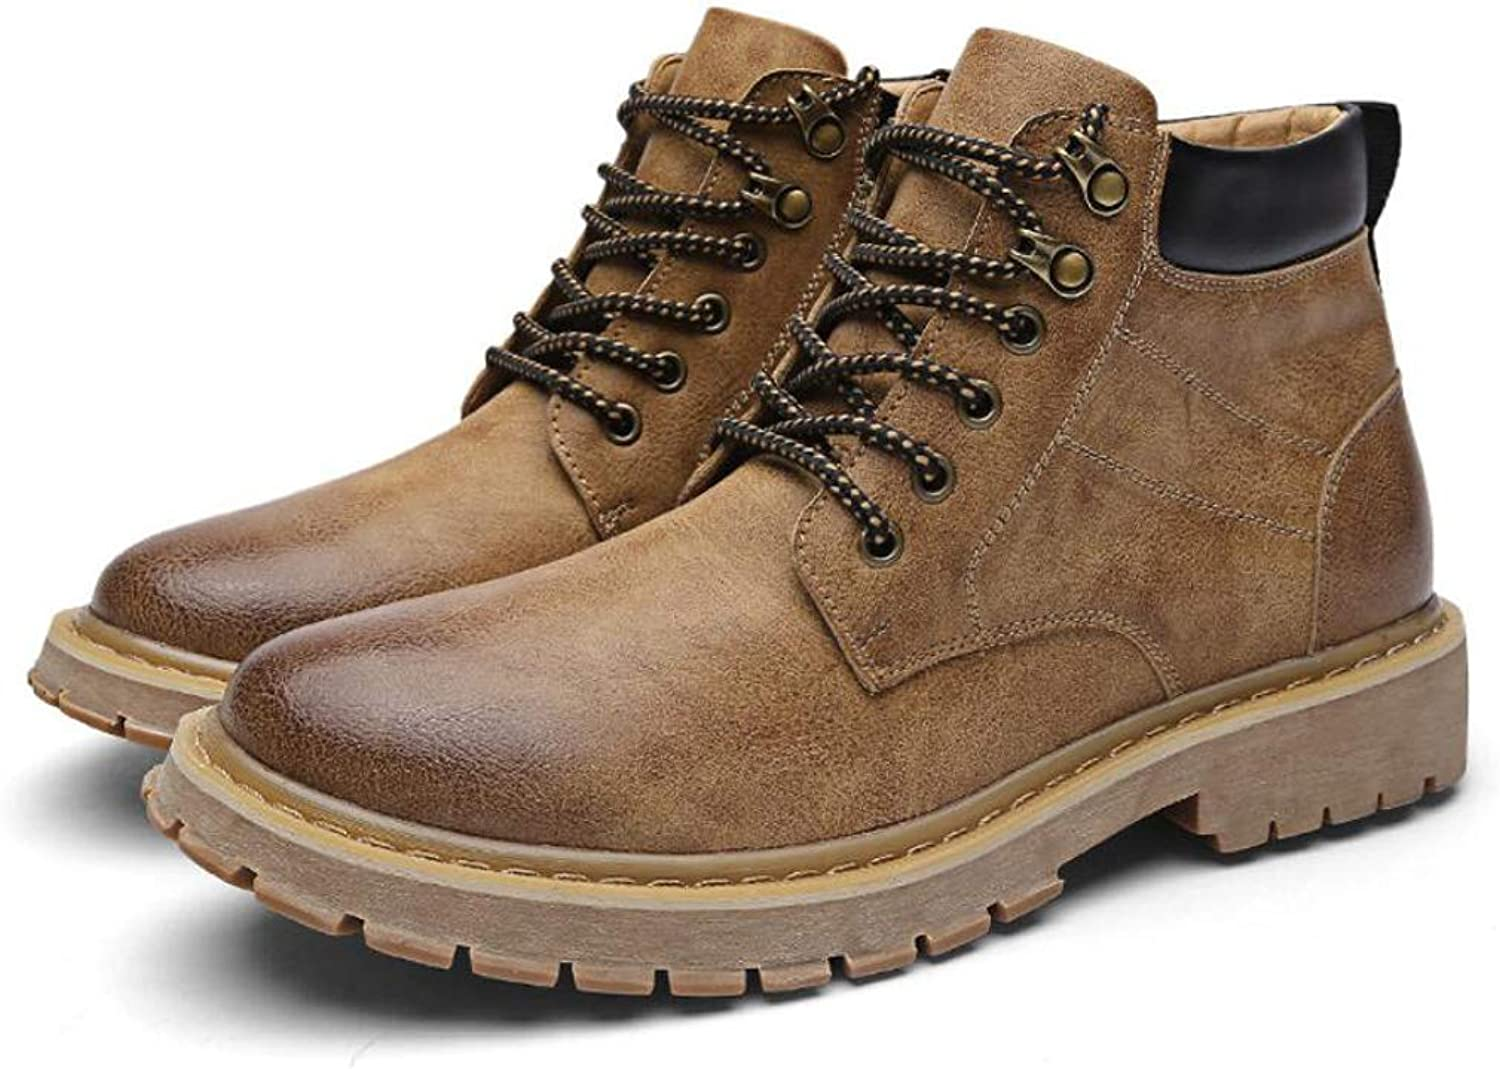 Zxcvb Outdoor Warm Retro High-top Martin Boots Men's Wear Hiking shoes Women's Classic Lace Up Round Toe Martin Boots Teens Girls Warm Short Boots